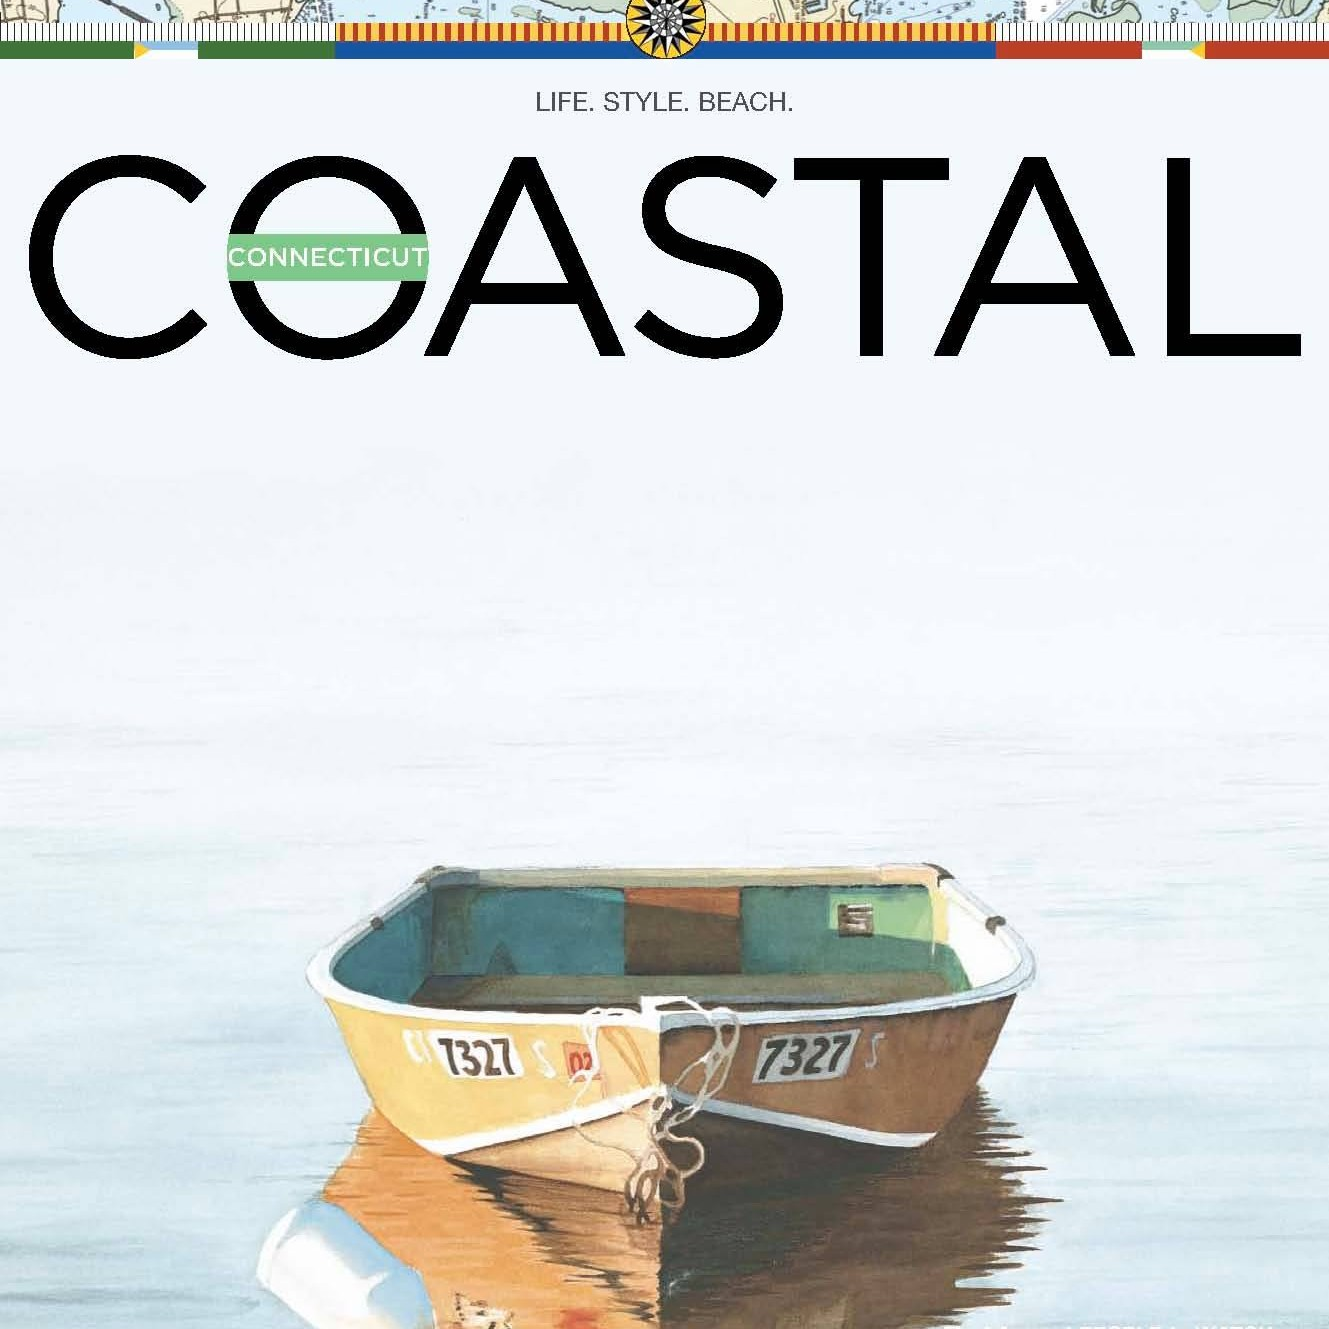 7 People to Watch in Coastal Connecticut Magazine!